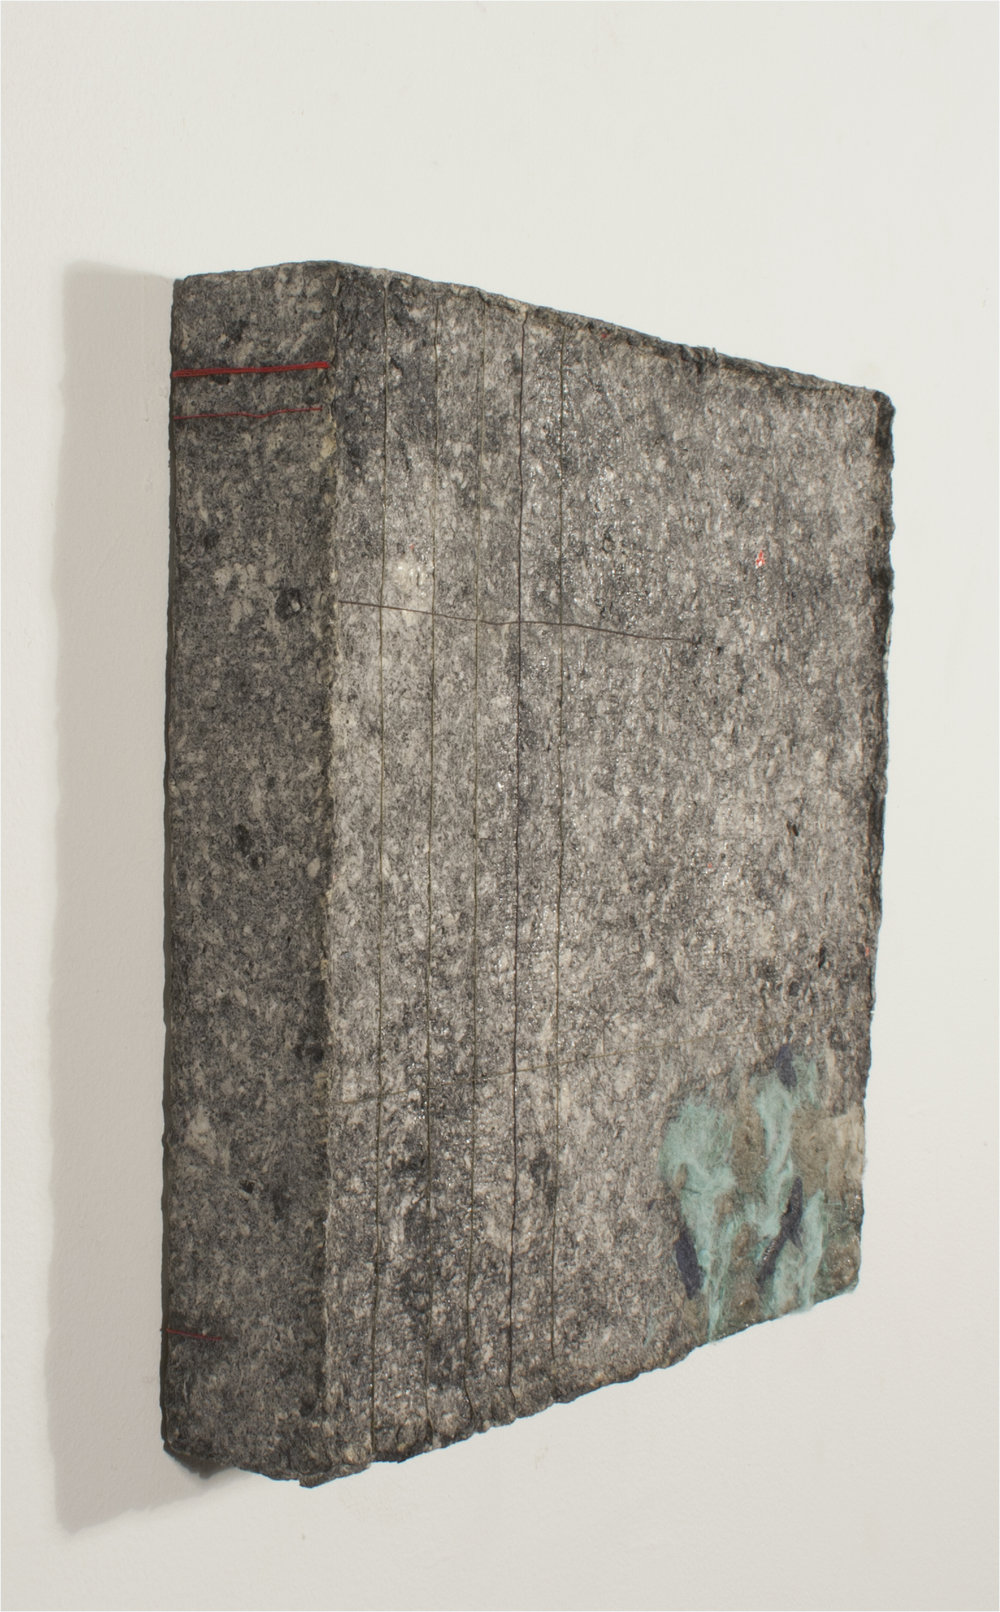 "Granite    Detritus Paper, Charcoal, Dryer Lint, String, and Glue on Wood   11"" x 11""  2016"